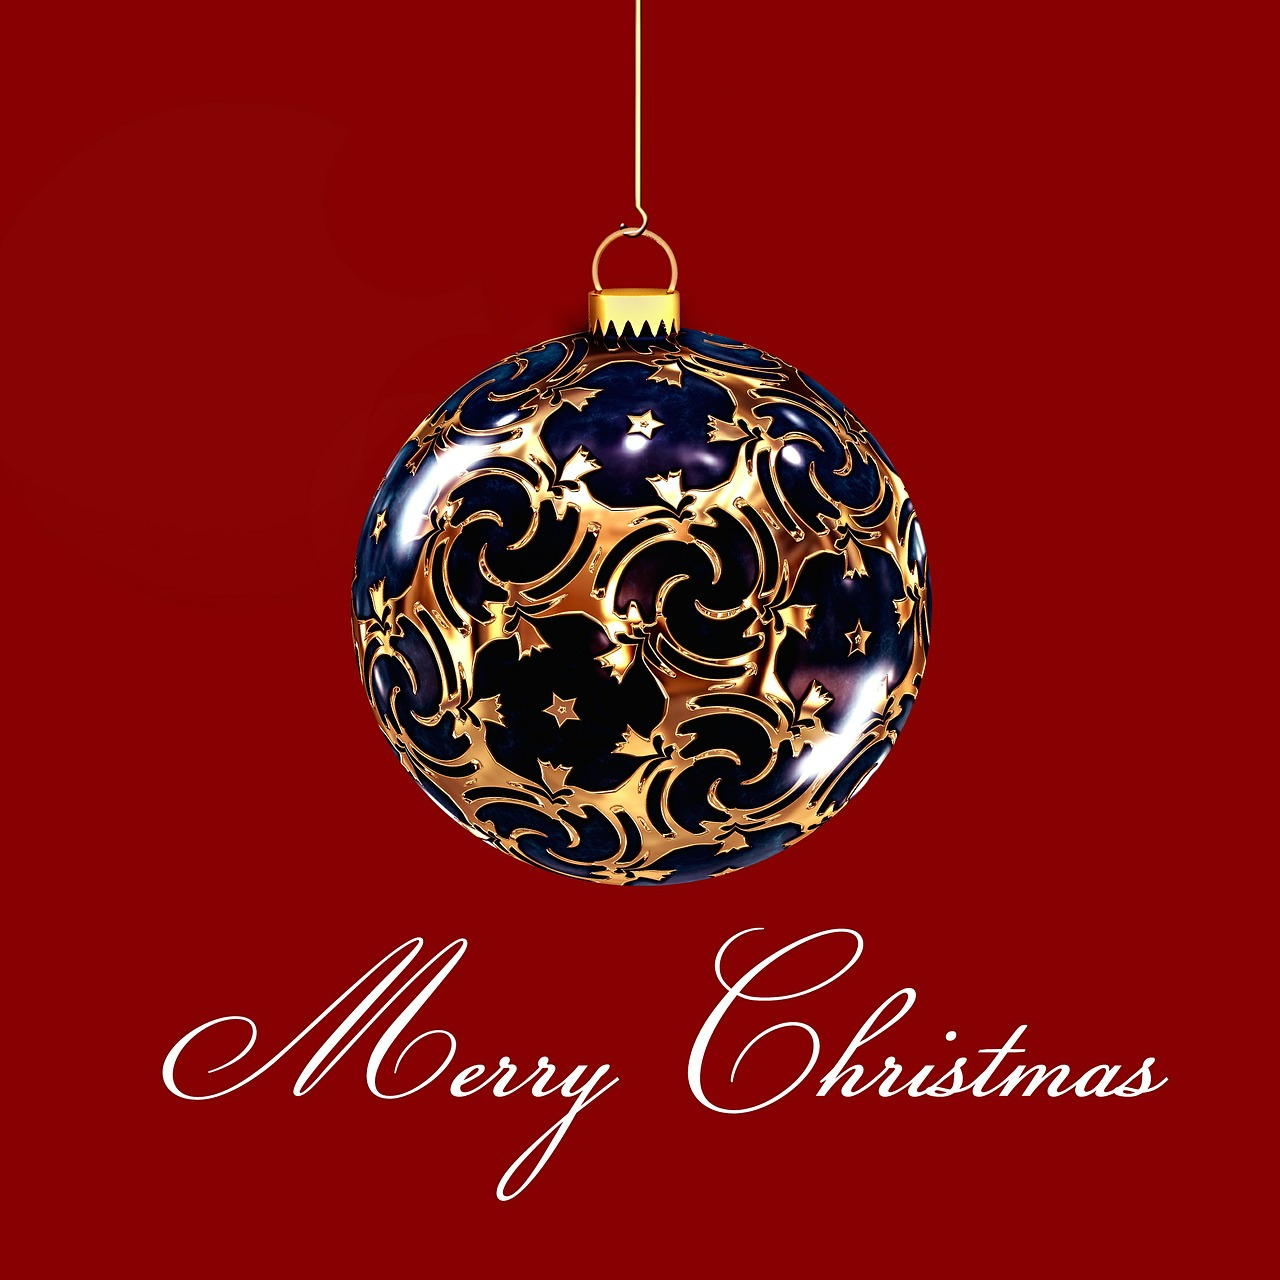 Merry Christmas 2016 Wallpapers Free Download